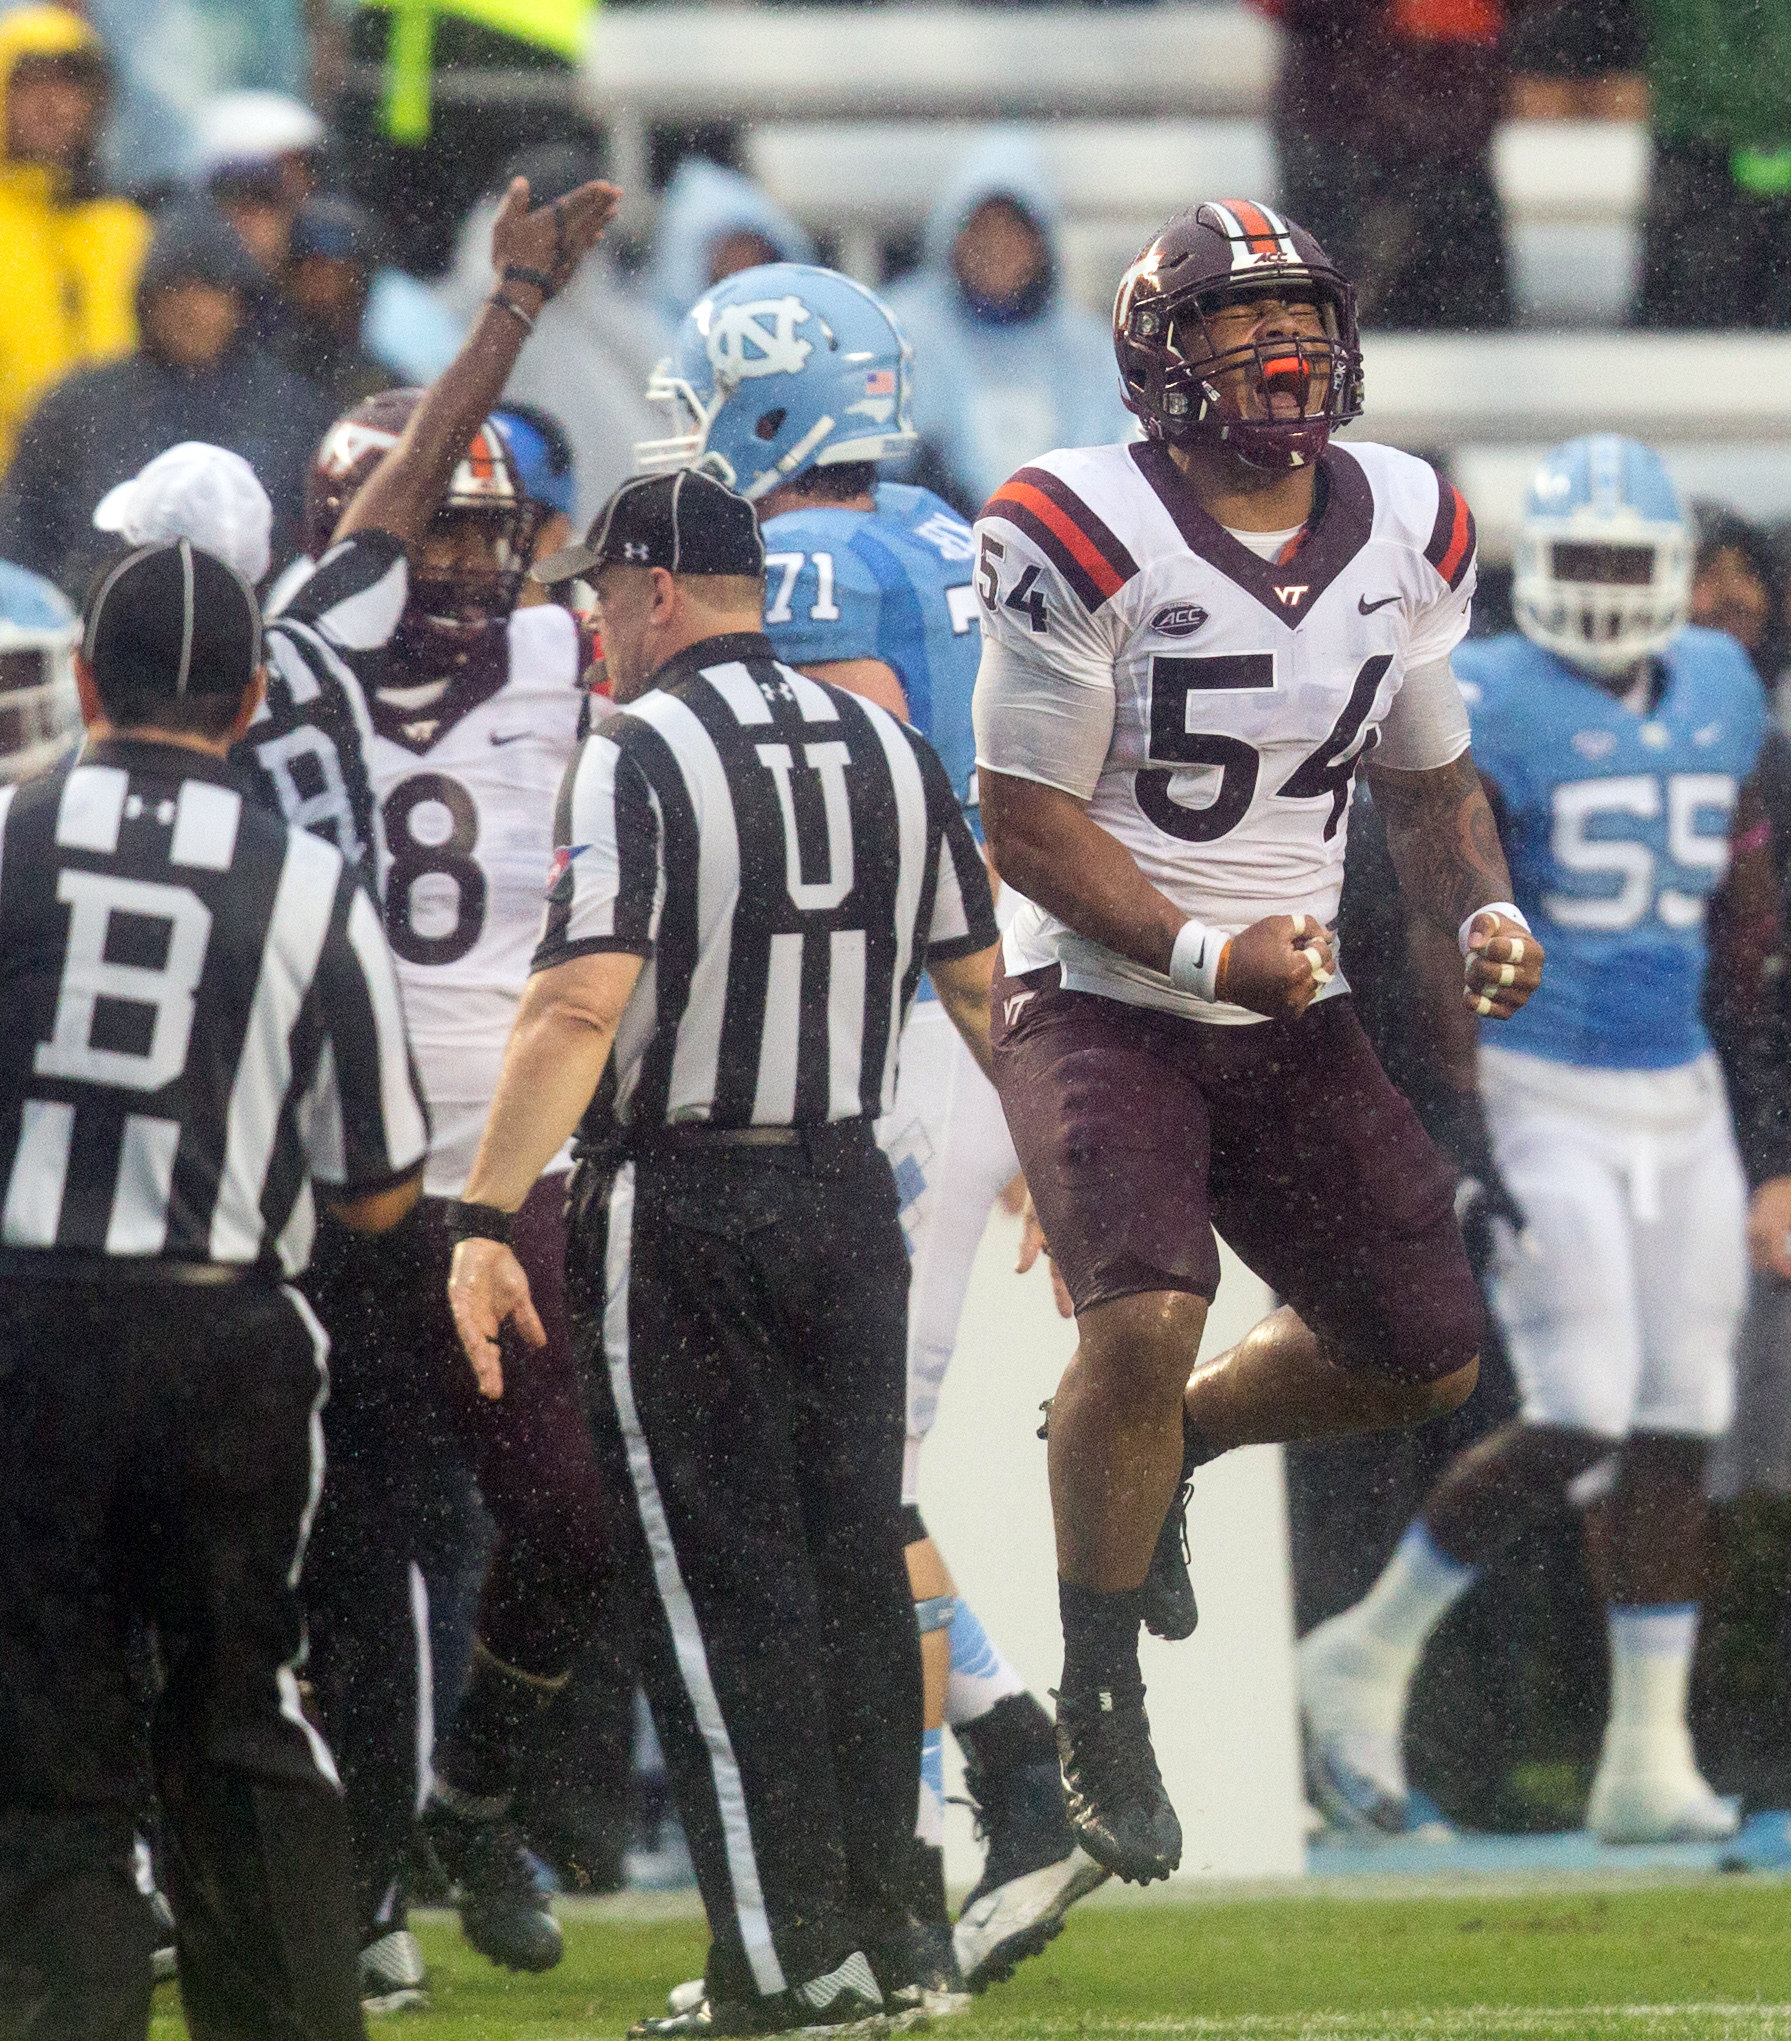 Virginia Tech's Andrew Motuapuaka (54) celebrates following a turnover by North Carolina in the first half of an NCAA college football game Chapel Hill, N.C. Saturday, Oct. 8, 2016. (AP Photo/Ben McKeown)